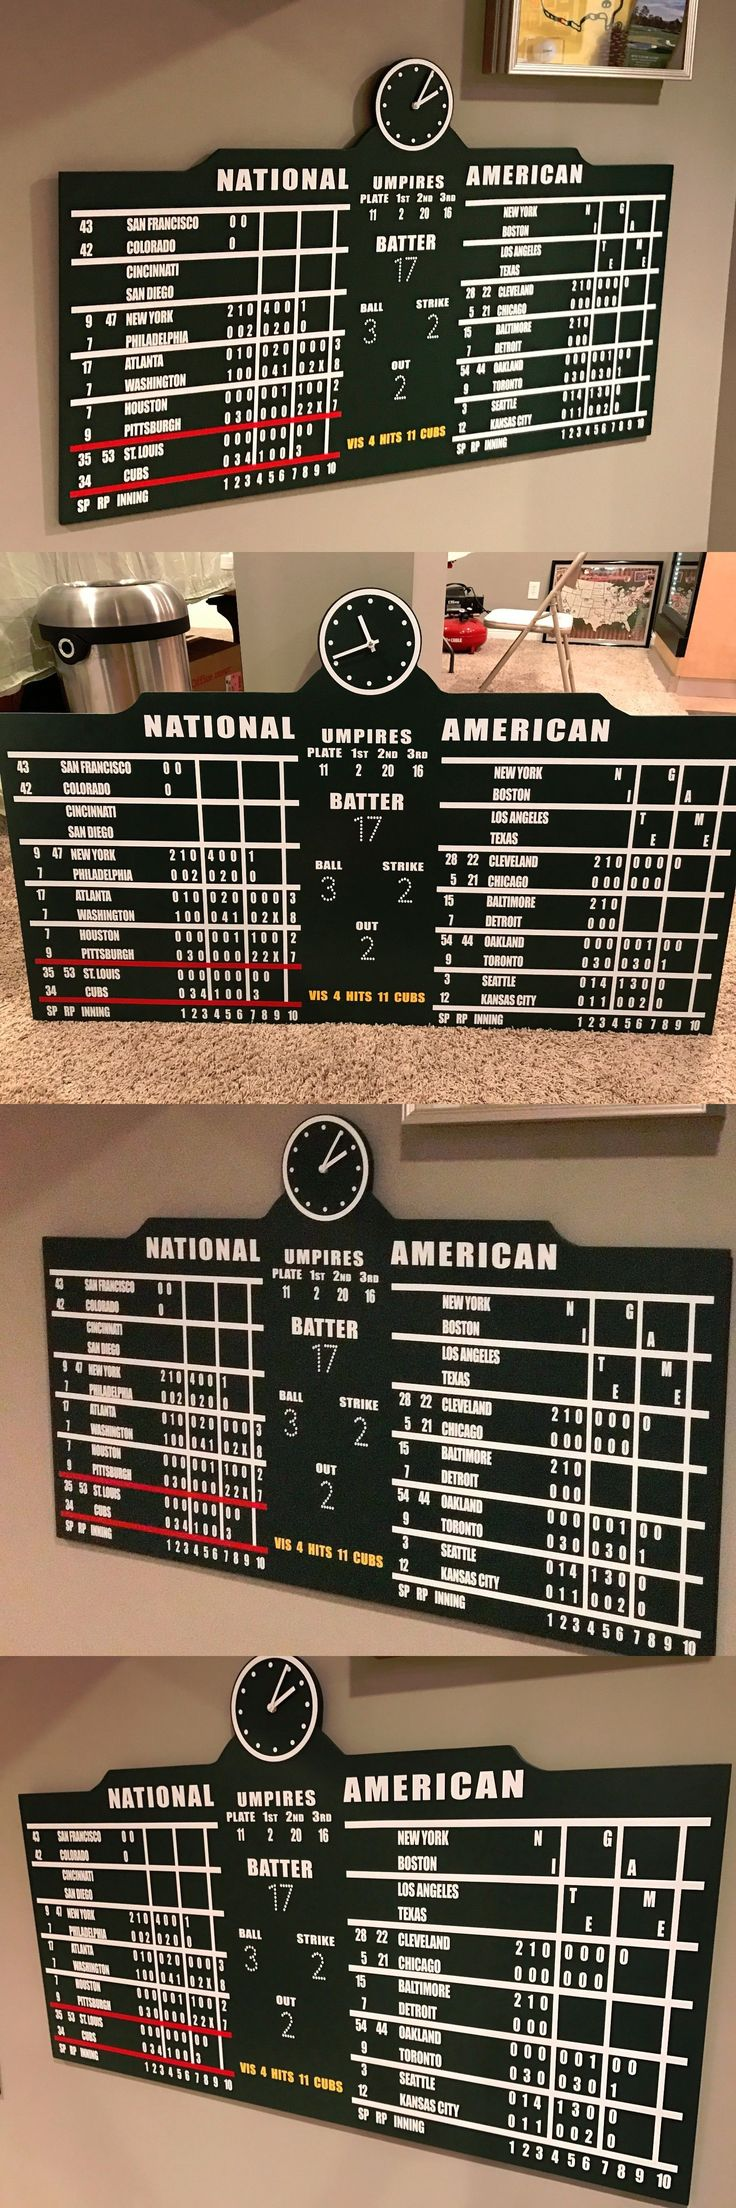 tickets: Wrigley Field Scoreboard Chicago Cubs Collectible Sign Memorabilia Mlb 4 Wide -> BUY IT NOW ONLY: $250 on eBay!